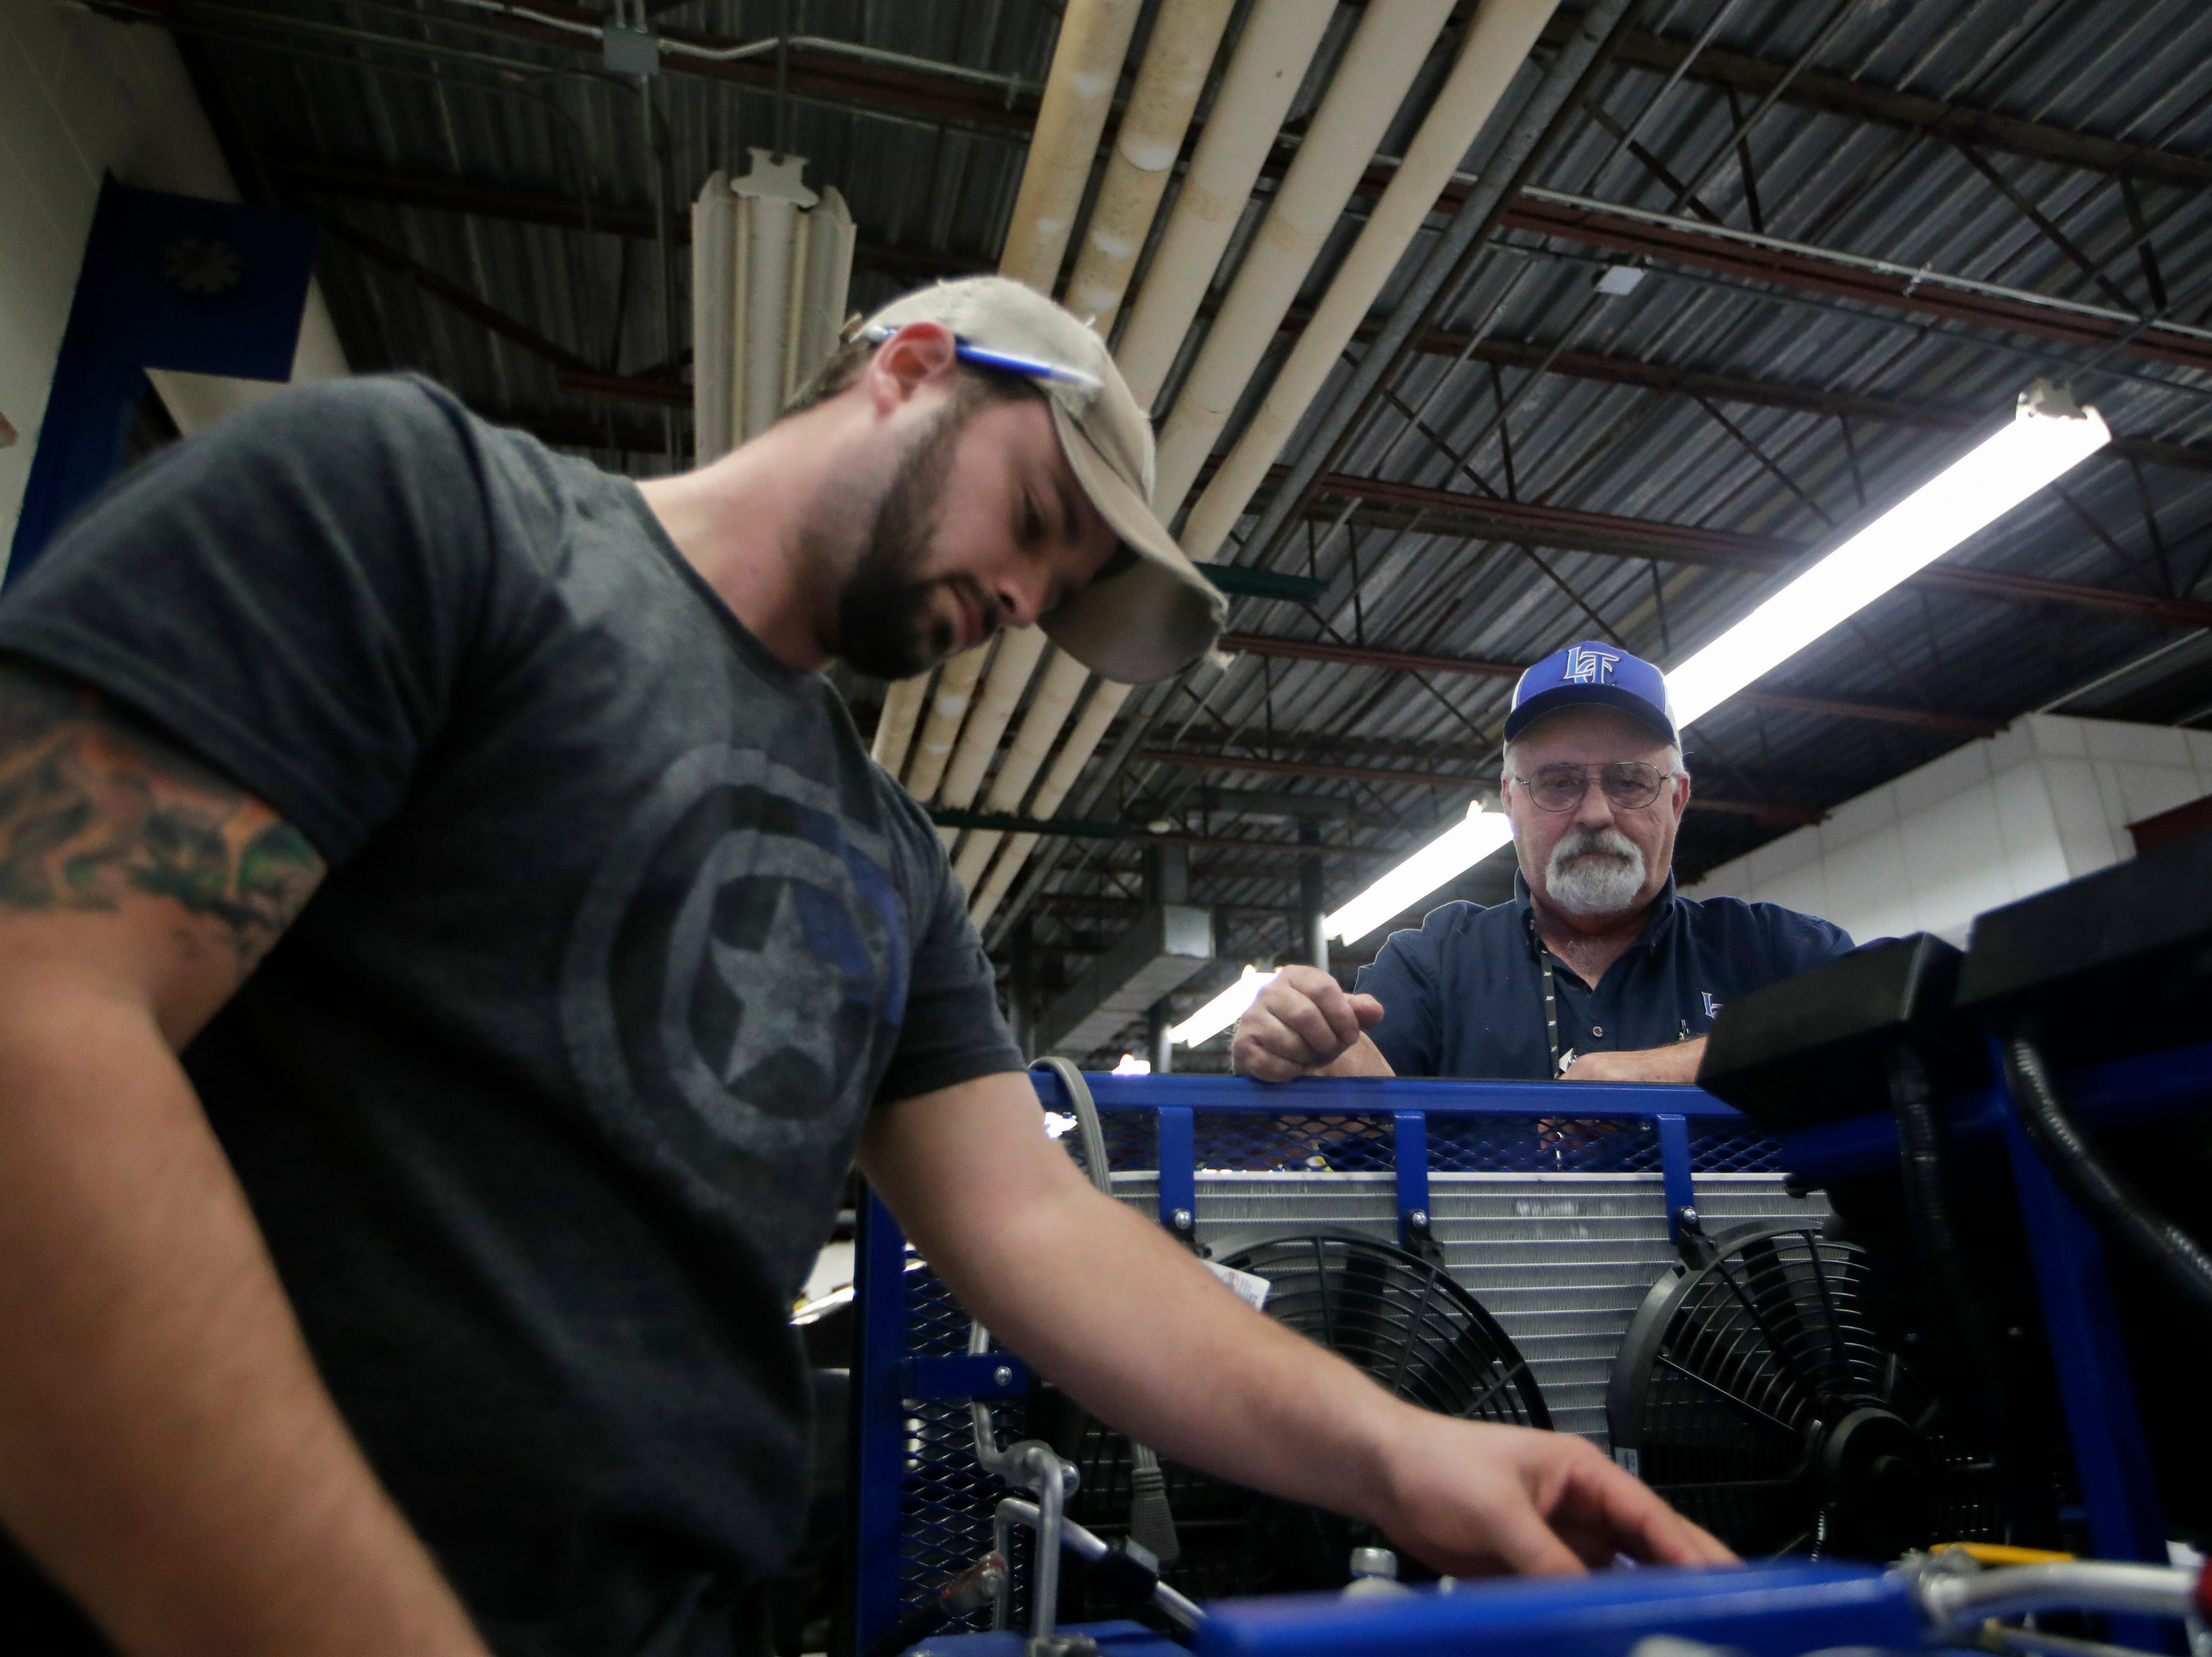 Automotive Service Technology Instructor Darrel Johnson watches as student Cody Smith works on the heating, ventilation and air conditioning model trainer Wednesday, Jan. 9, 2019 at Lively Technical Center which has been approved by the Leon County School Board to change it's name to Lively Technical College.